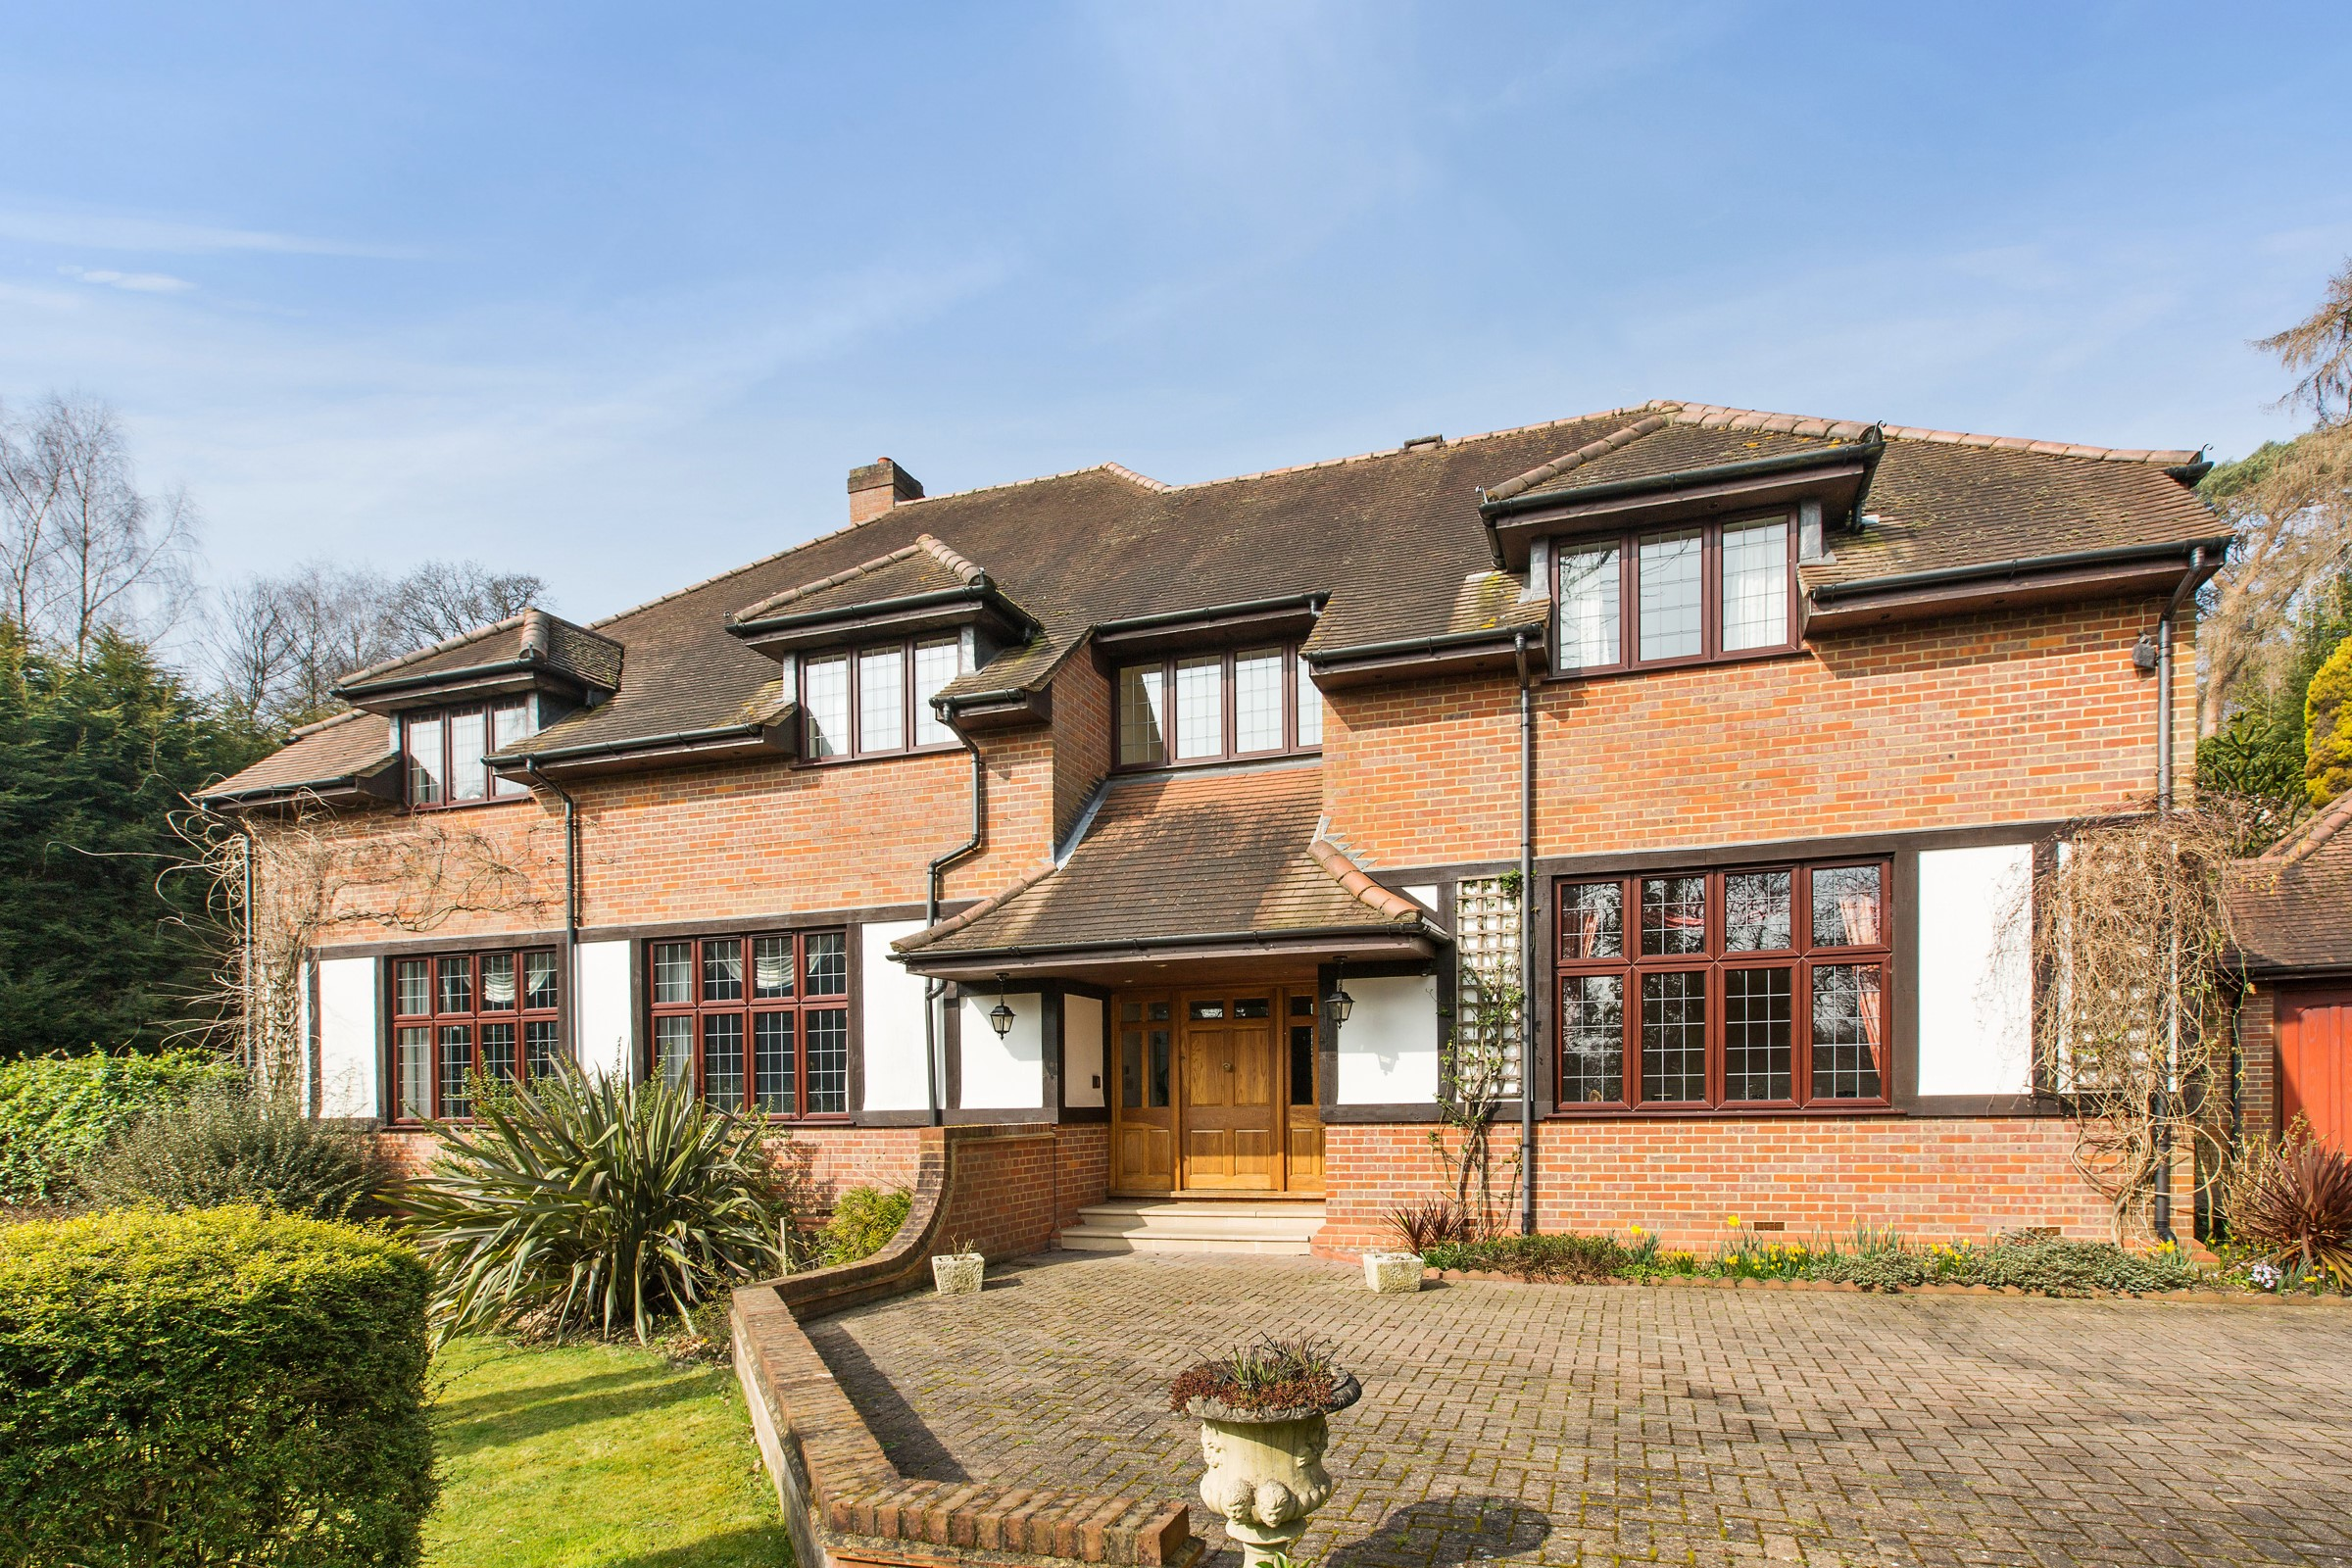 独户住宅 为 销售 在 Prestigious St Georges Hill Estate St George's Hill Weybridge 惠桥, 英格兰, KT130NP 英国